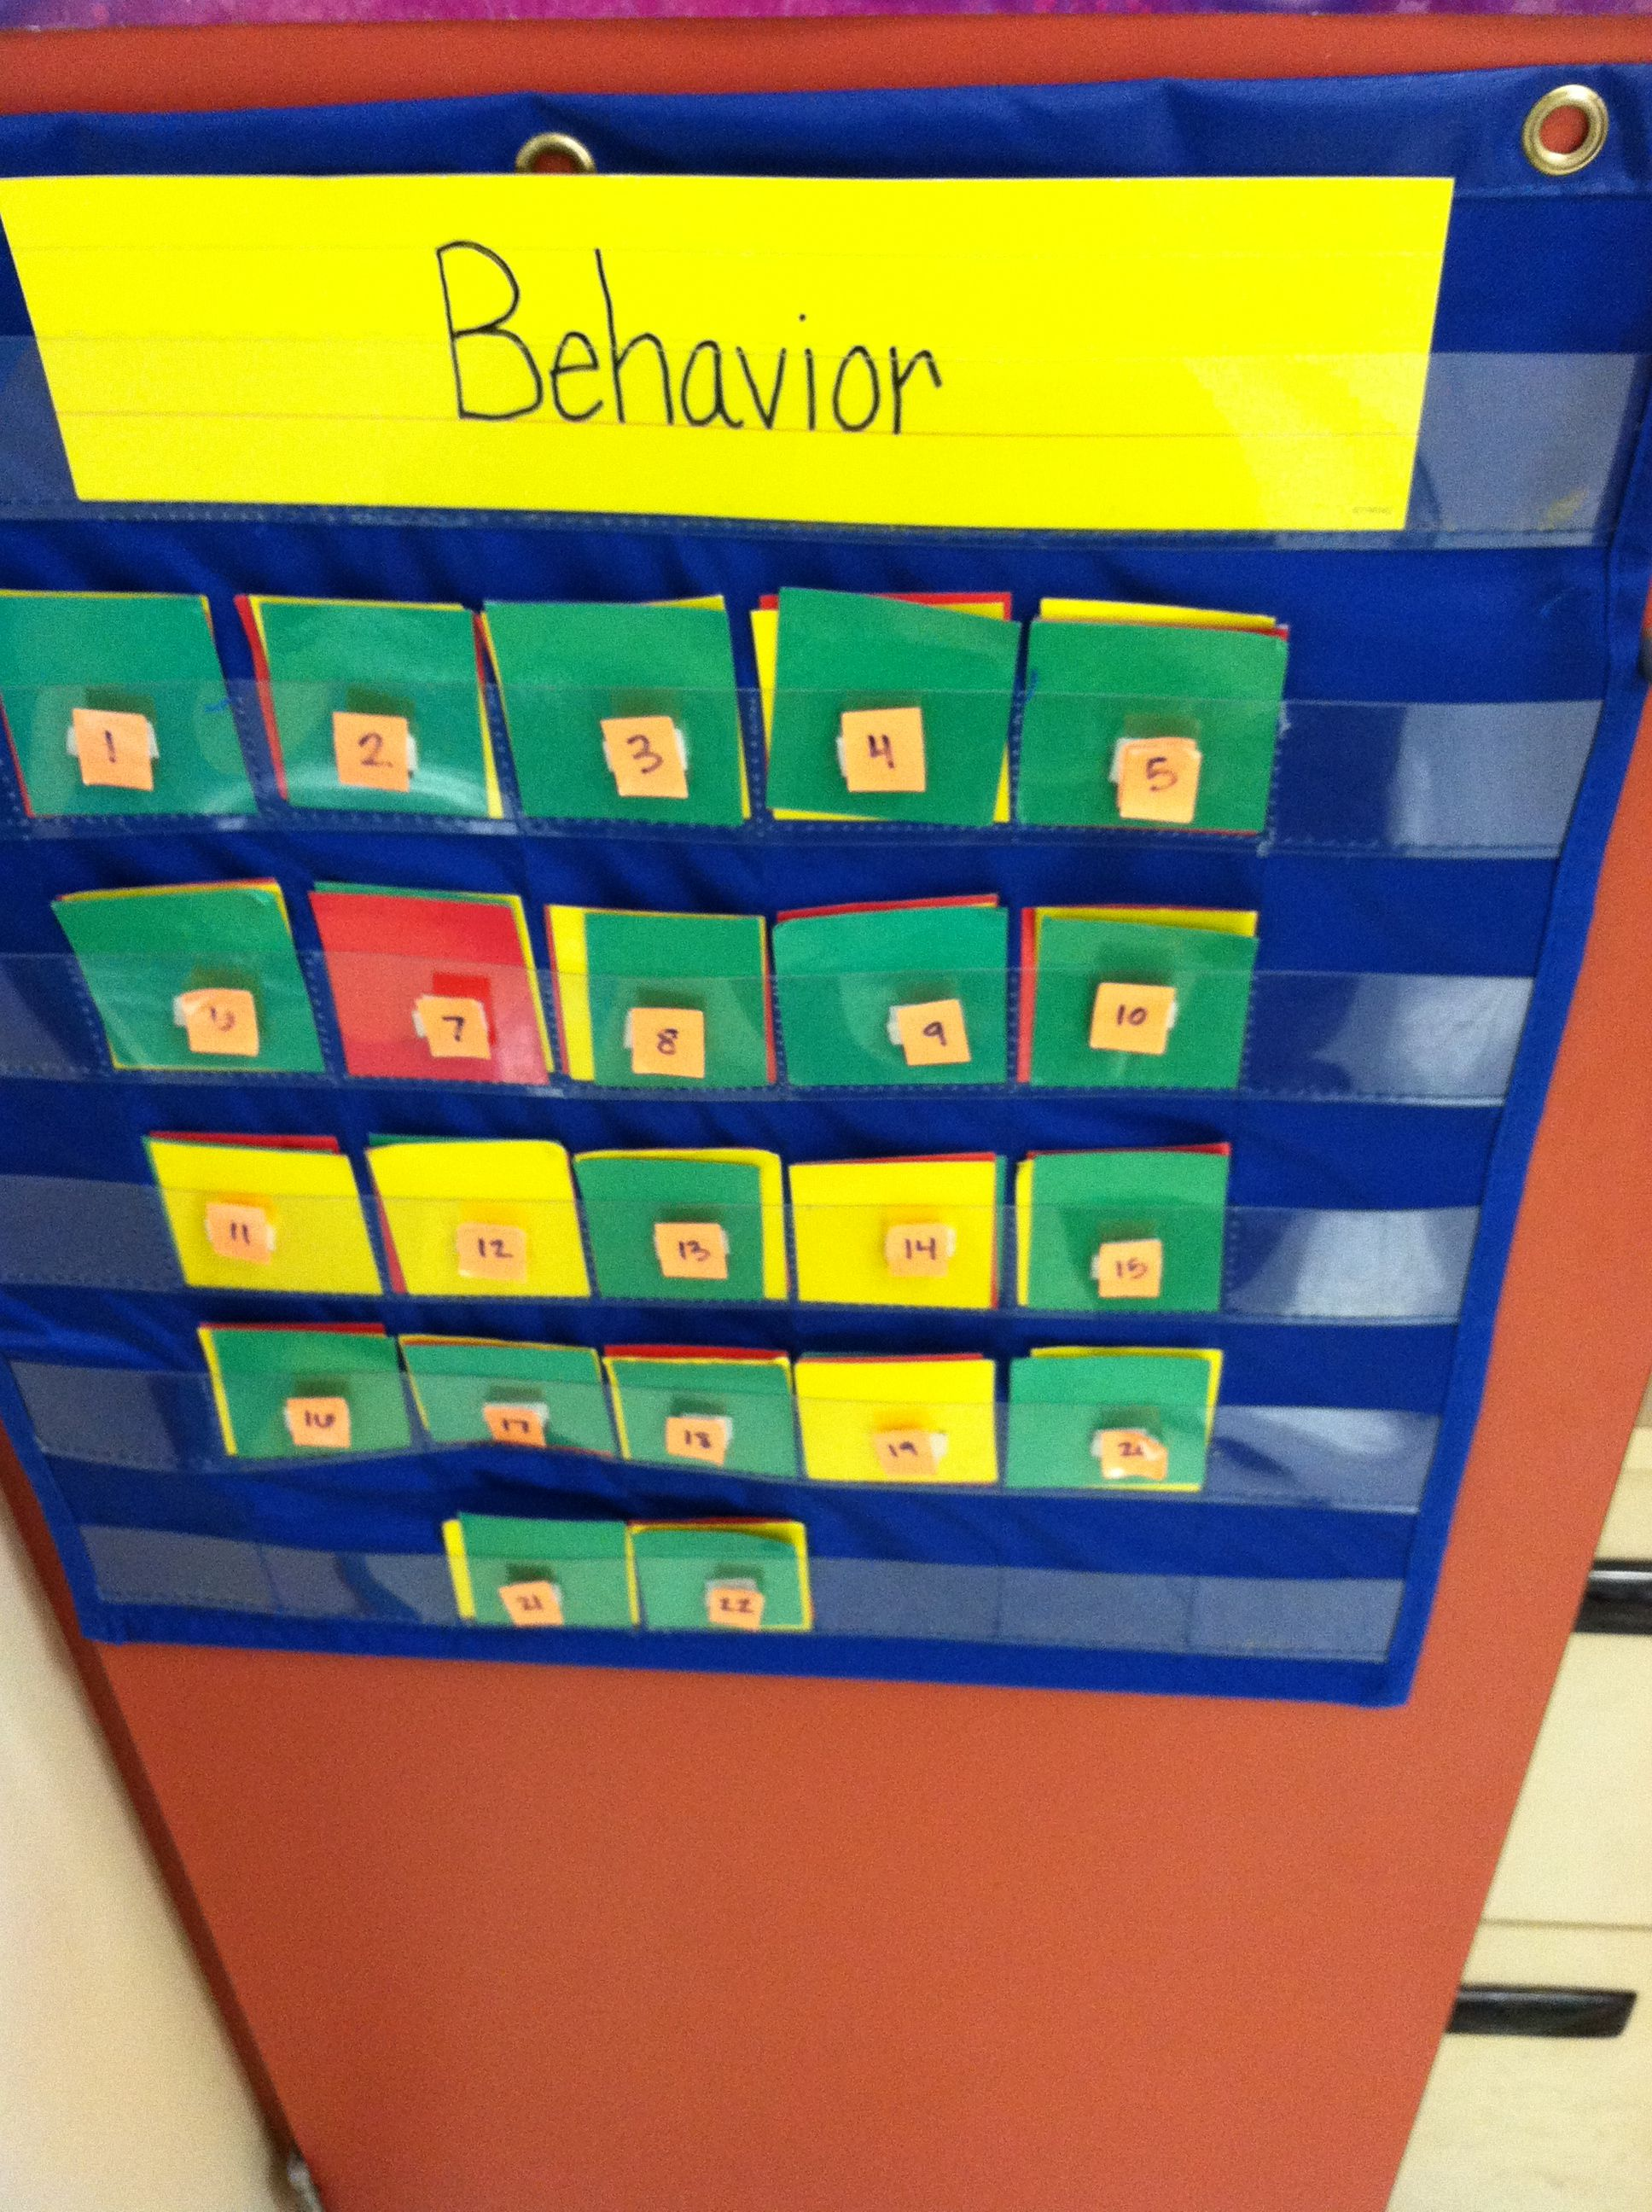 Red Green Yellow Card System Classroom Management Strategies Whole Brain Teaching Classroom Management Plan